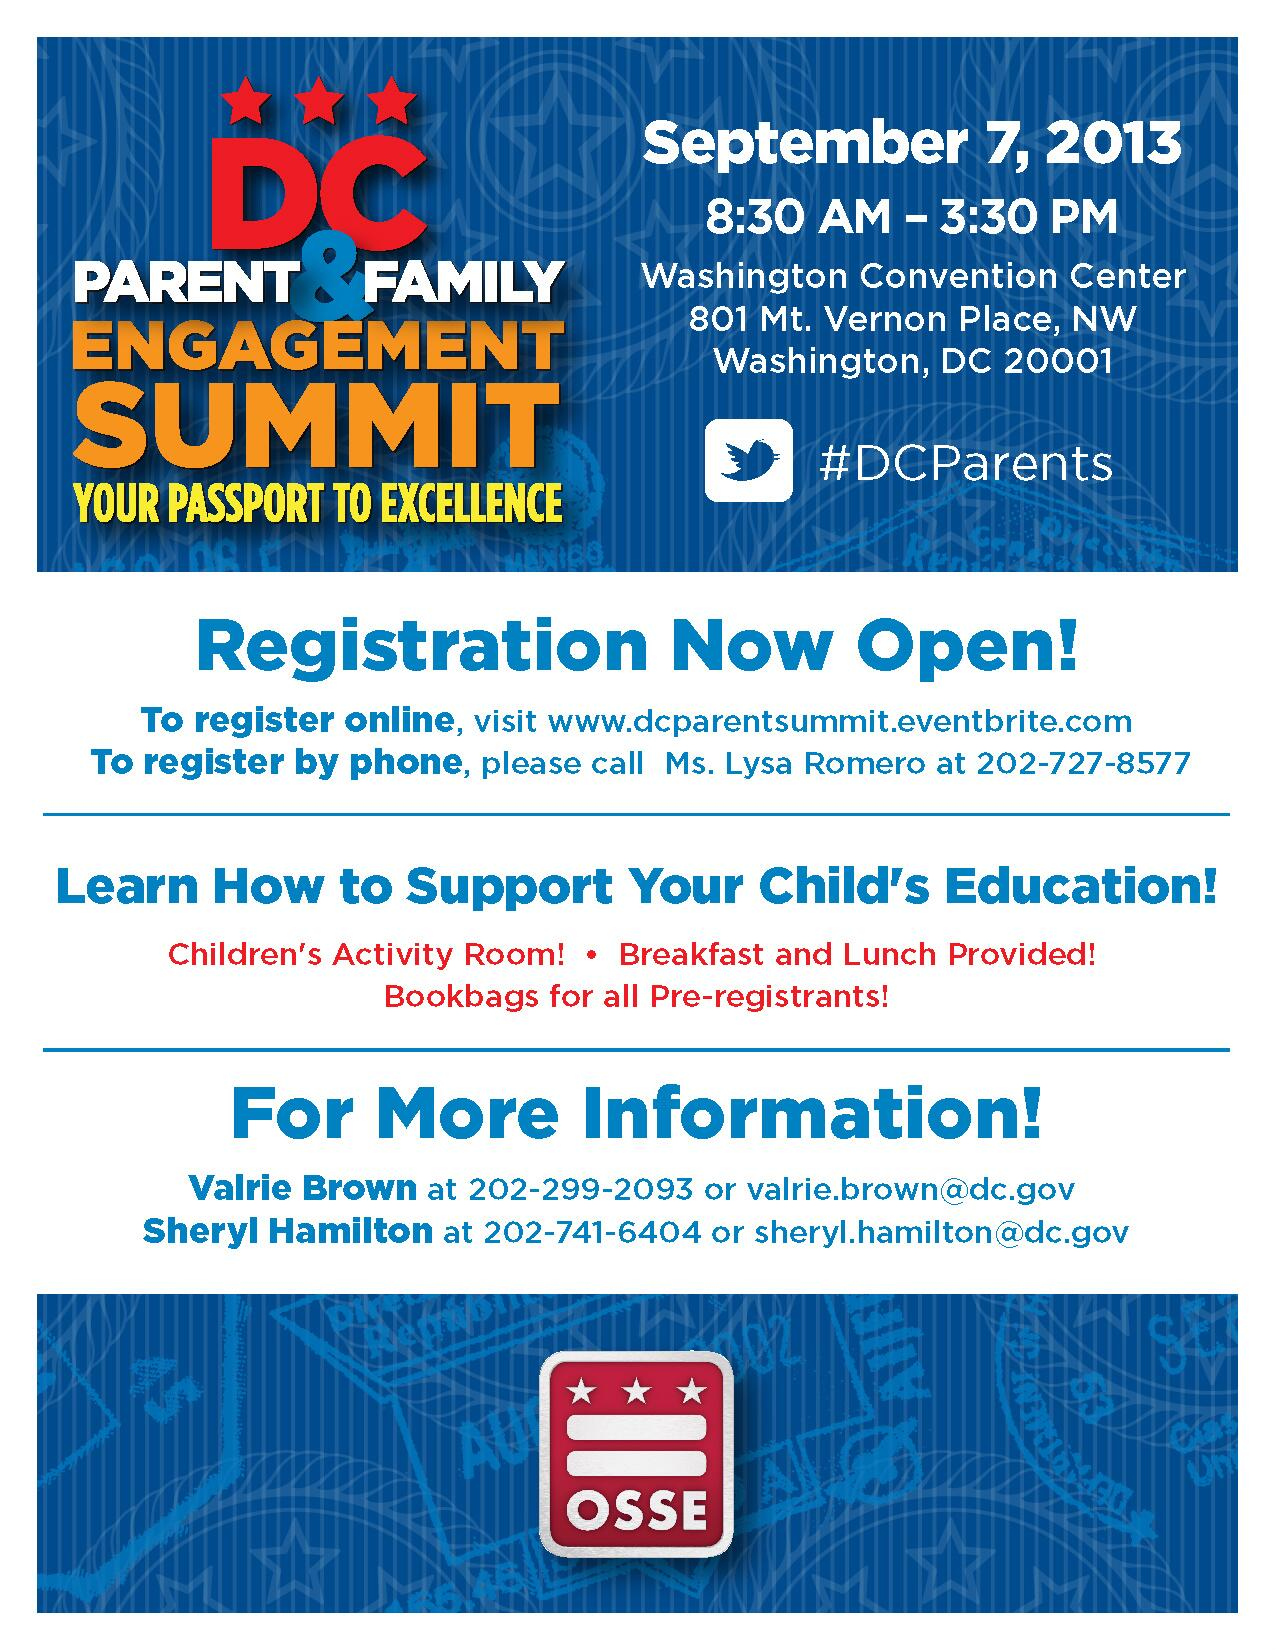 Twitter / cmdgrosso: Calling all #DCParents to join ...